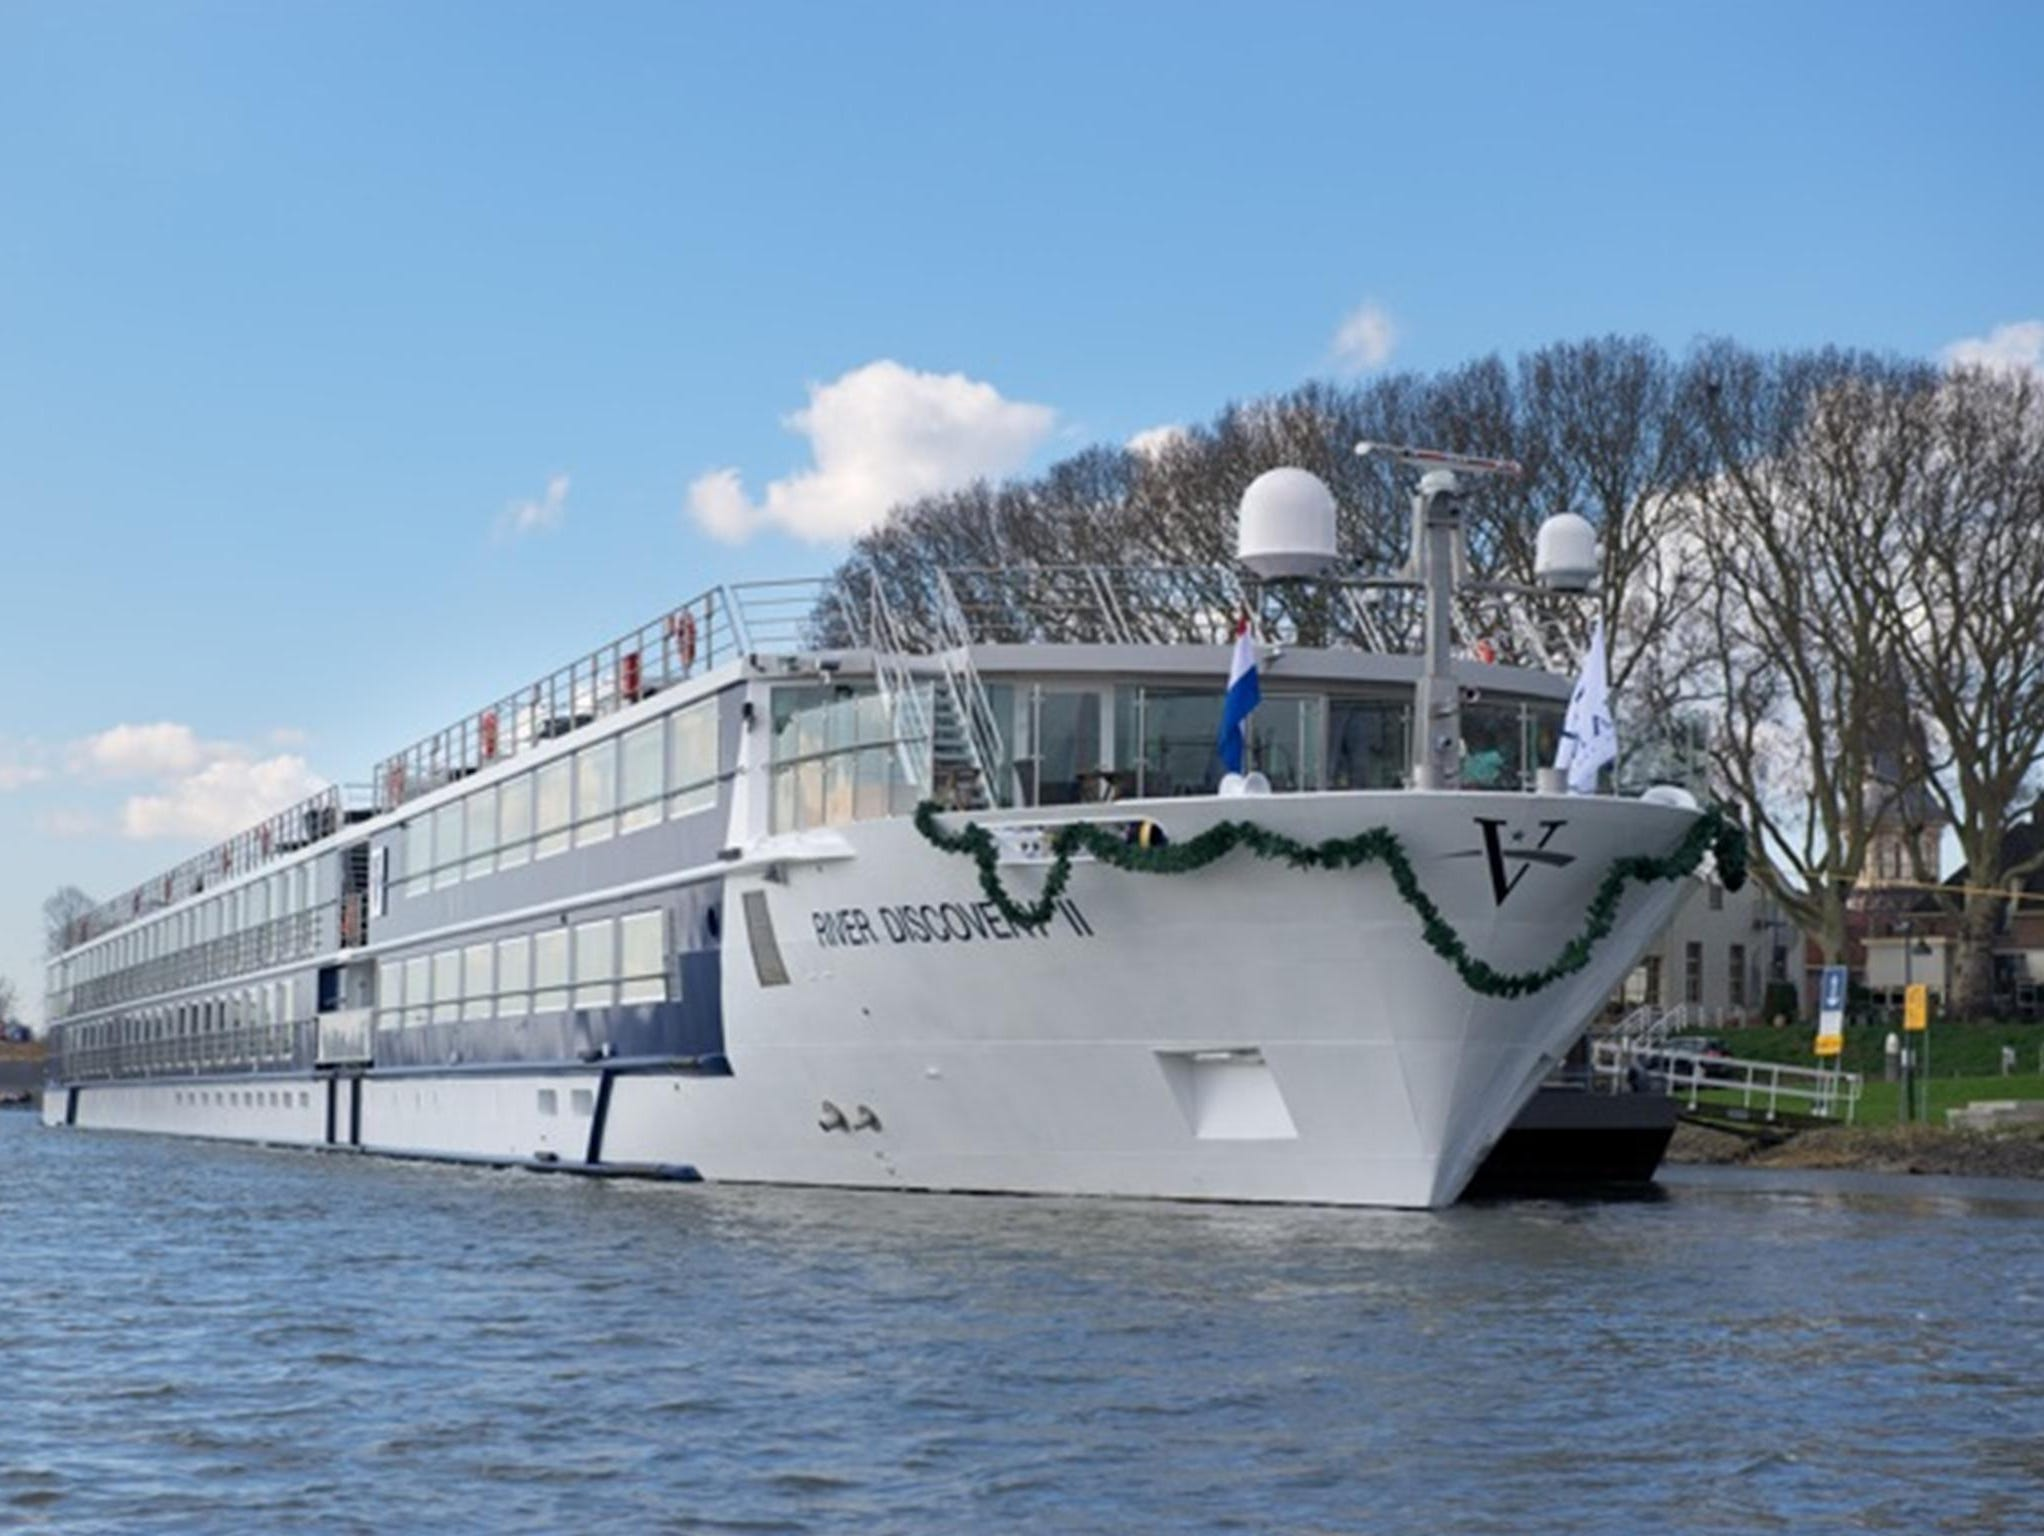 Boston-based Vantage Deluxe World Travel in 2012 christened its first new river cruise ship in five years, the 176-passenger River Discovery II.